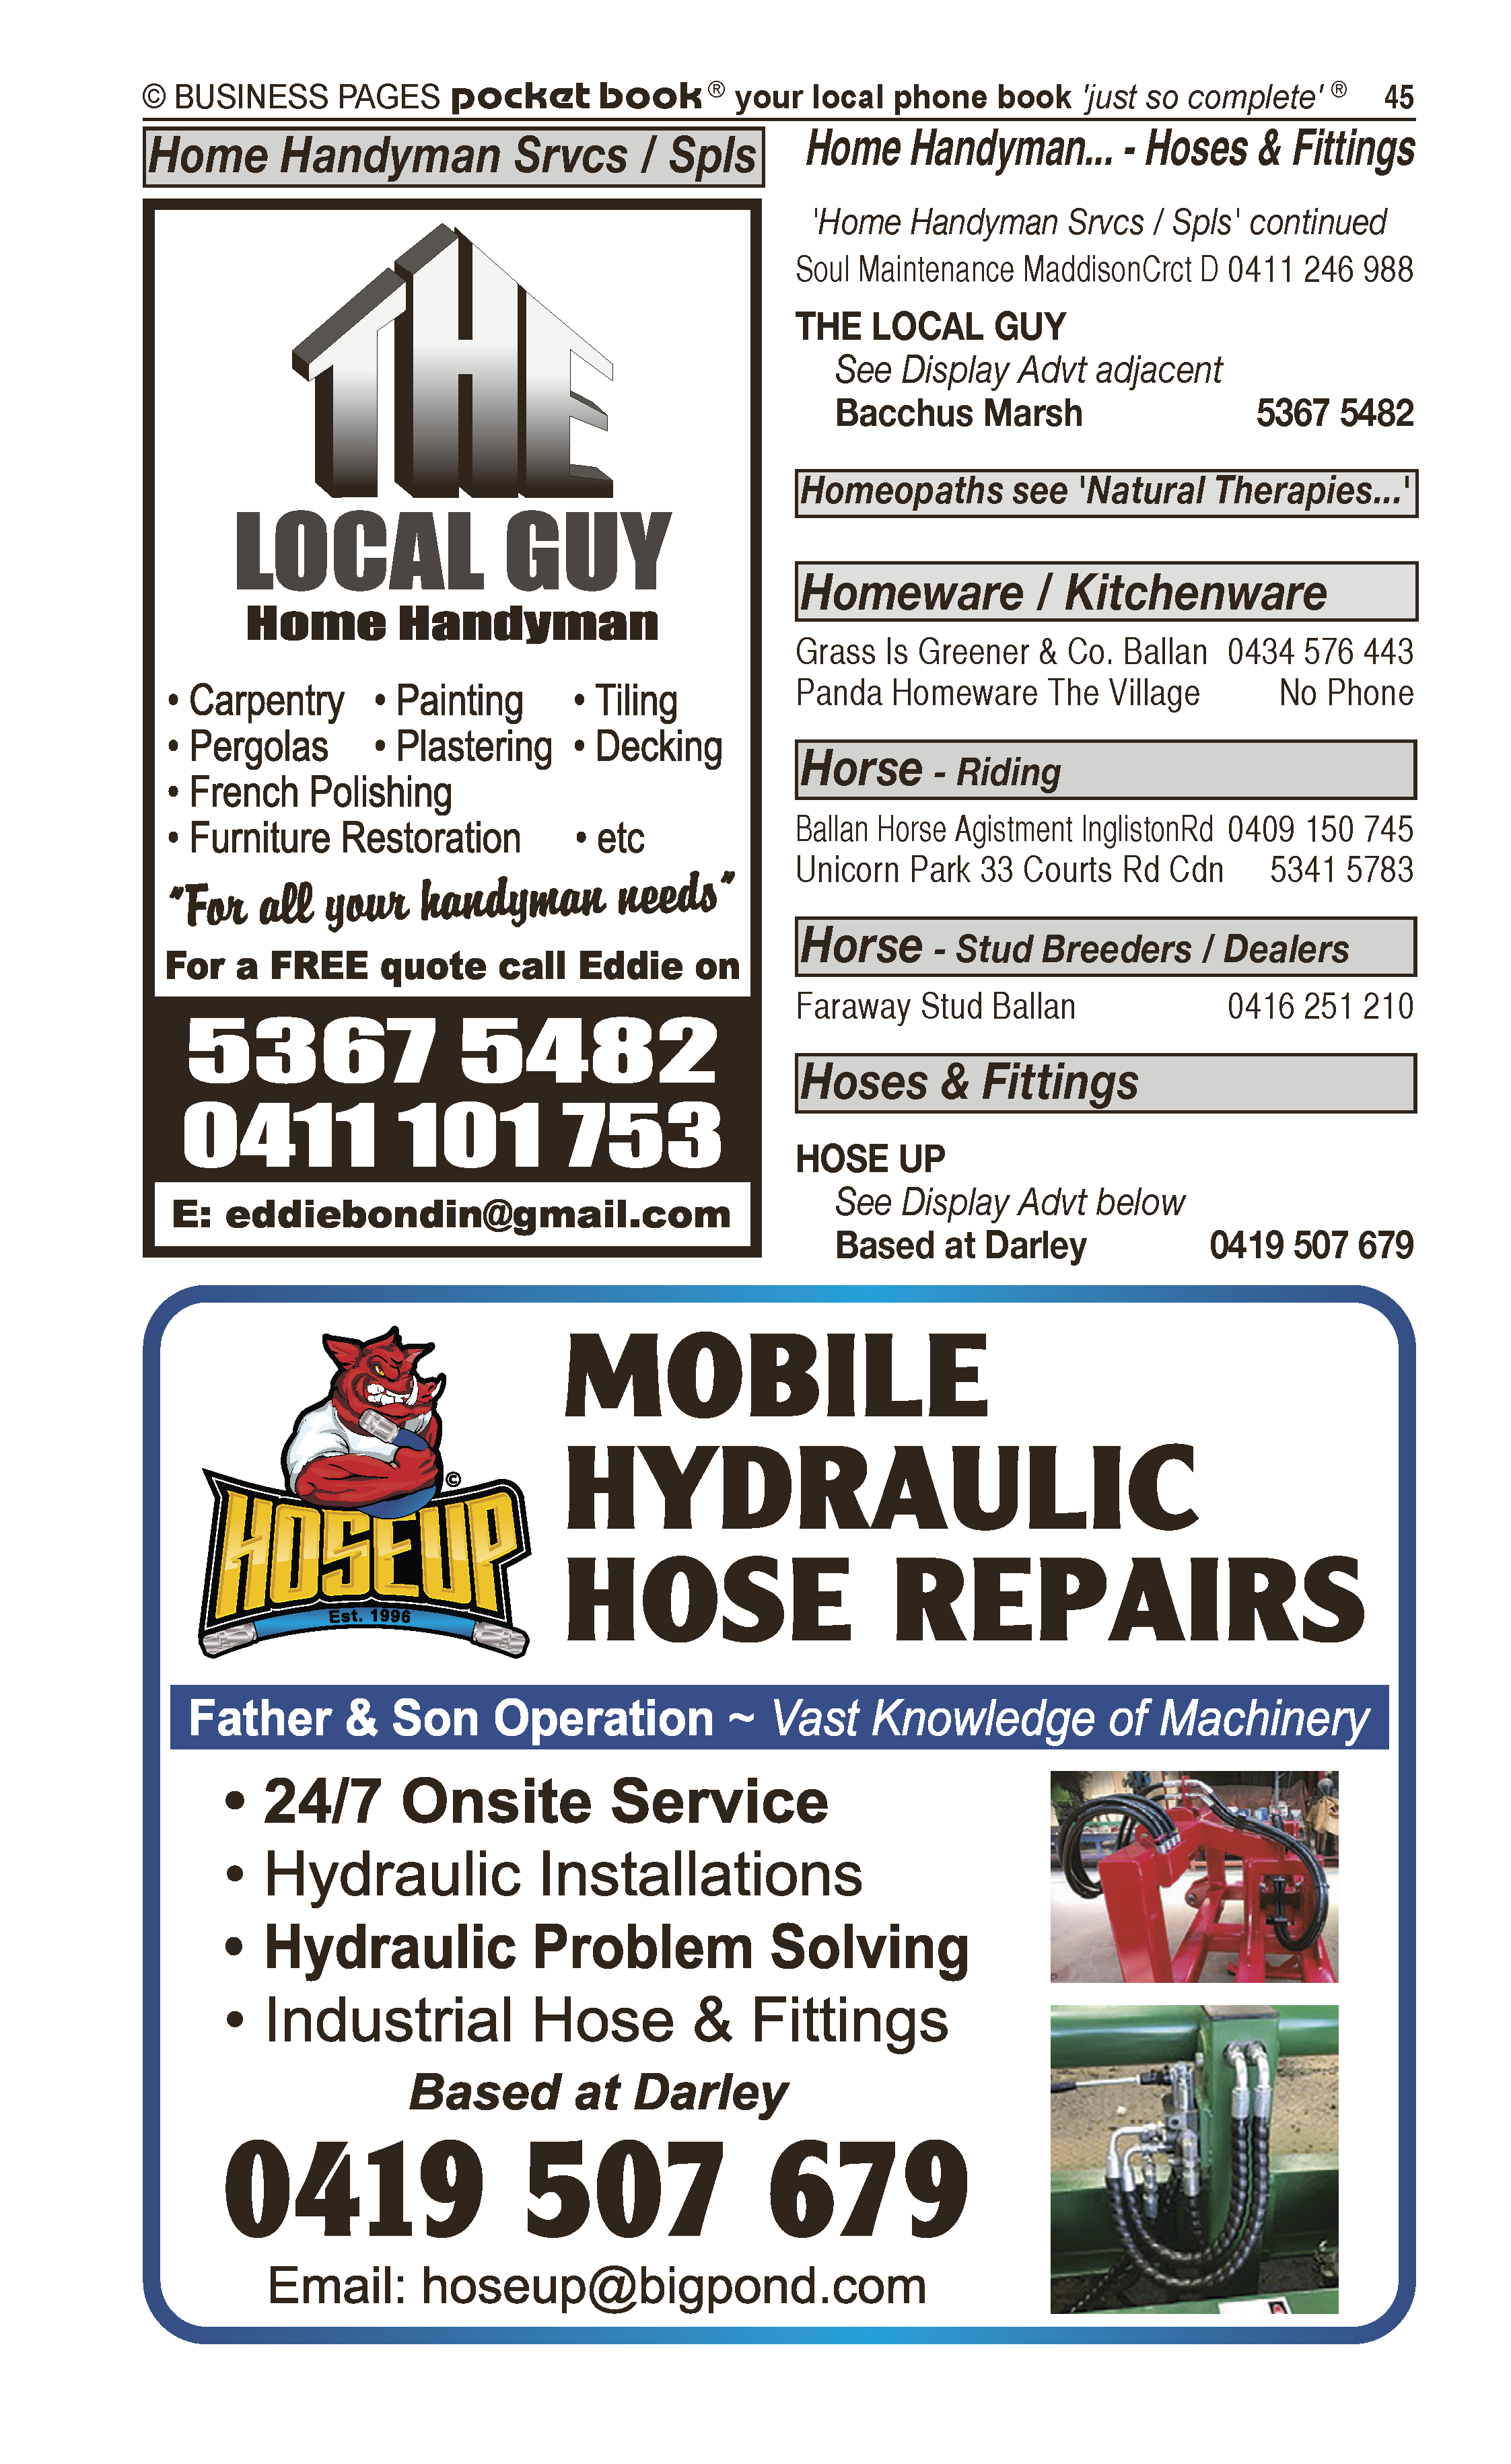 Ivers Liquid Waste | Septic Tank – Cleaning in Bacchus Marsh | PBezy Pocket Books local directories - page 45